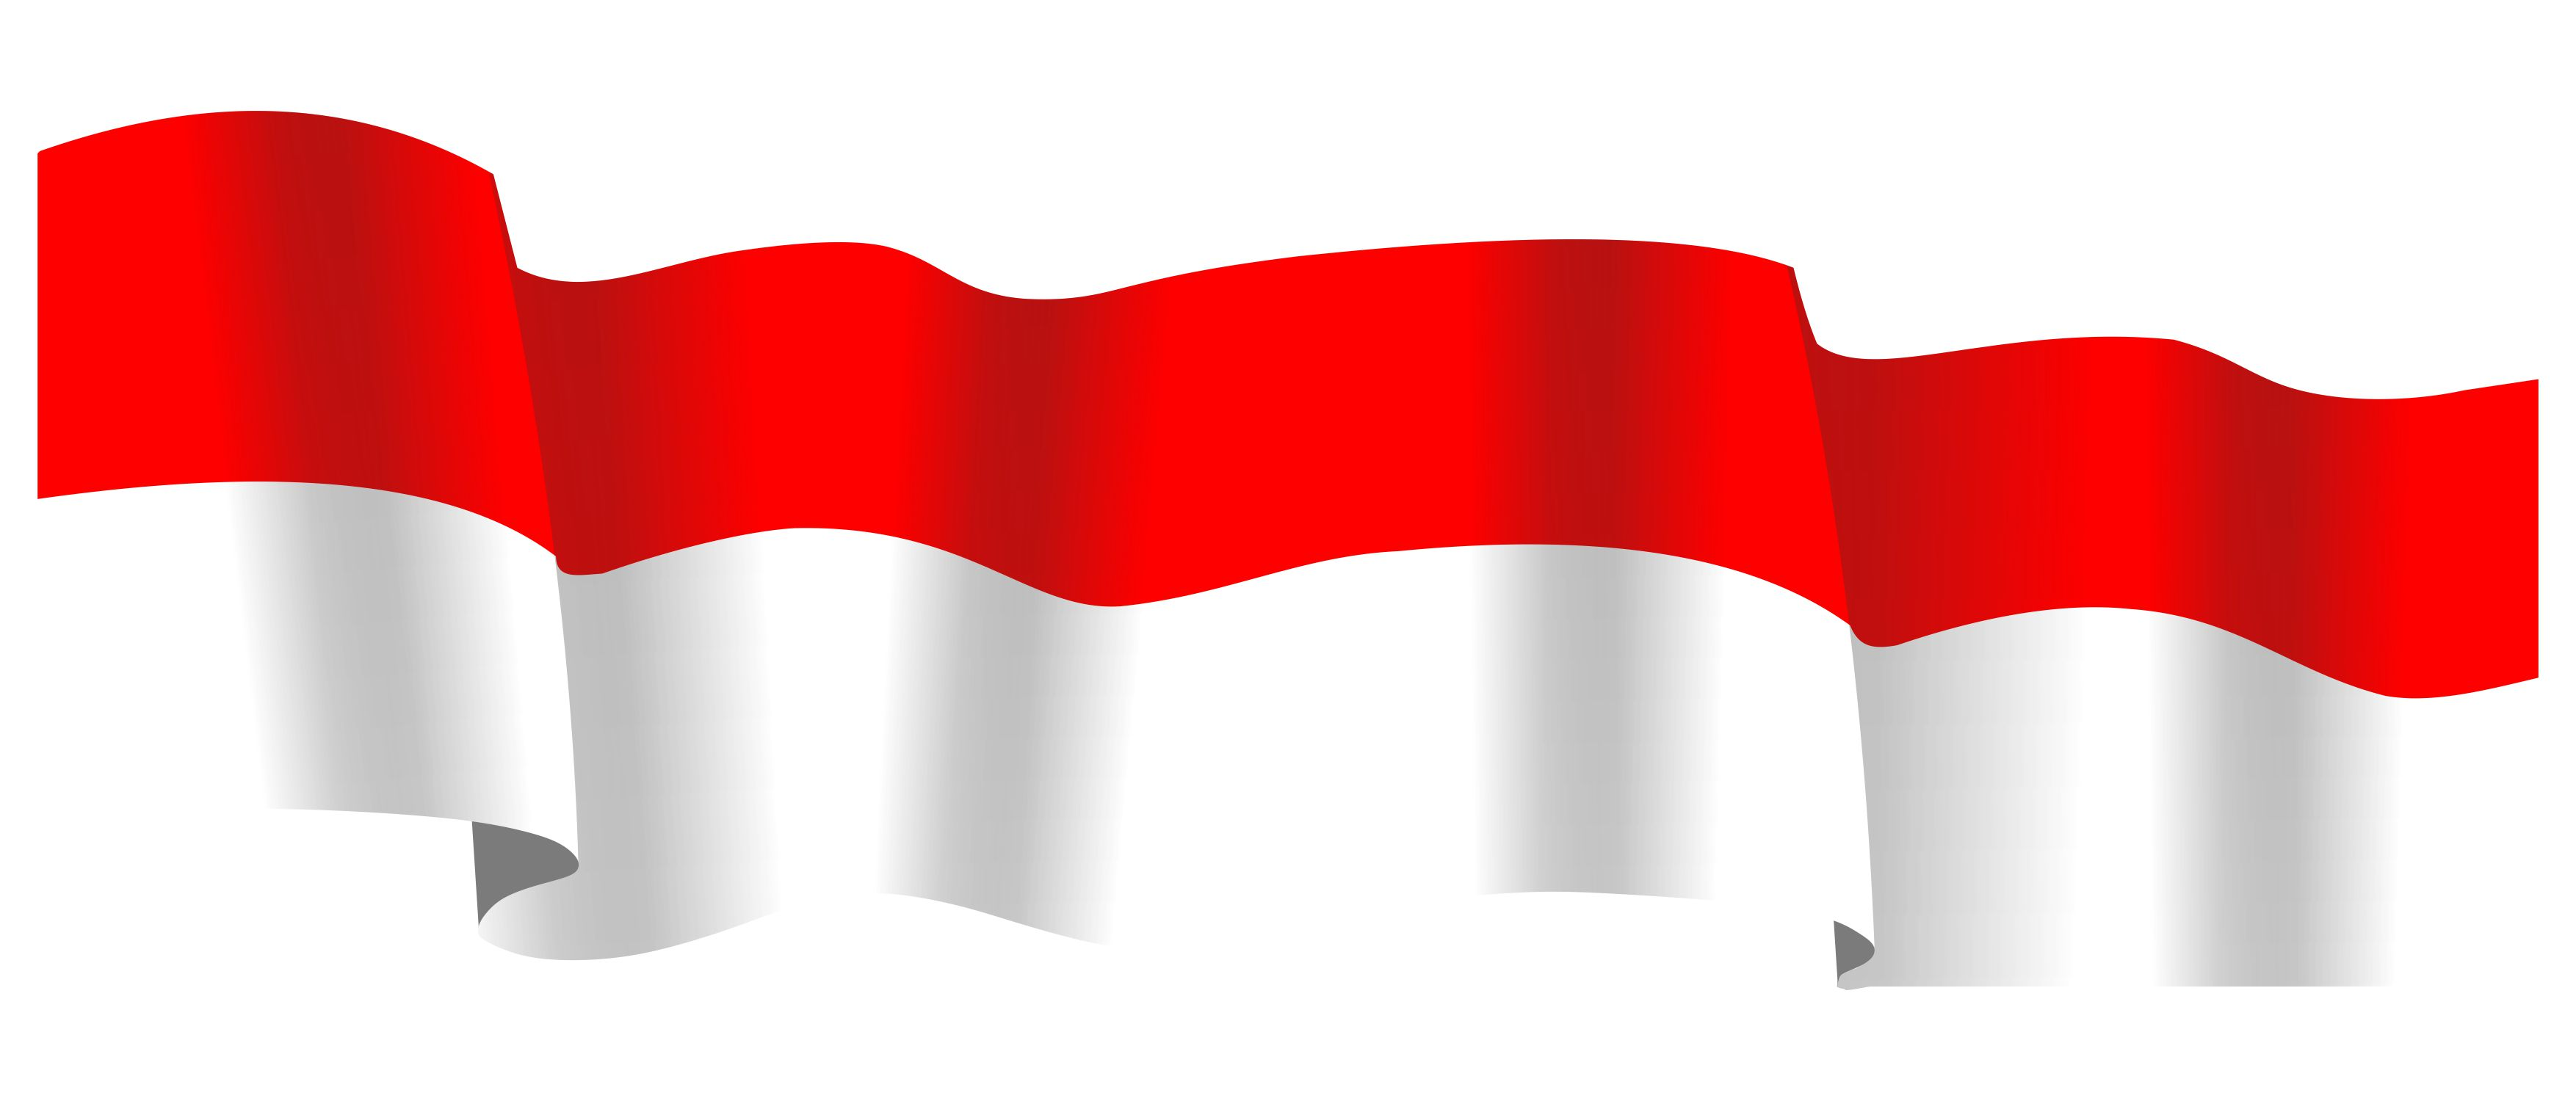 Bendera Merah Putih Vector Corel Draw Indonesian Flag Red White Desain ...